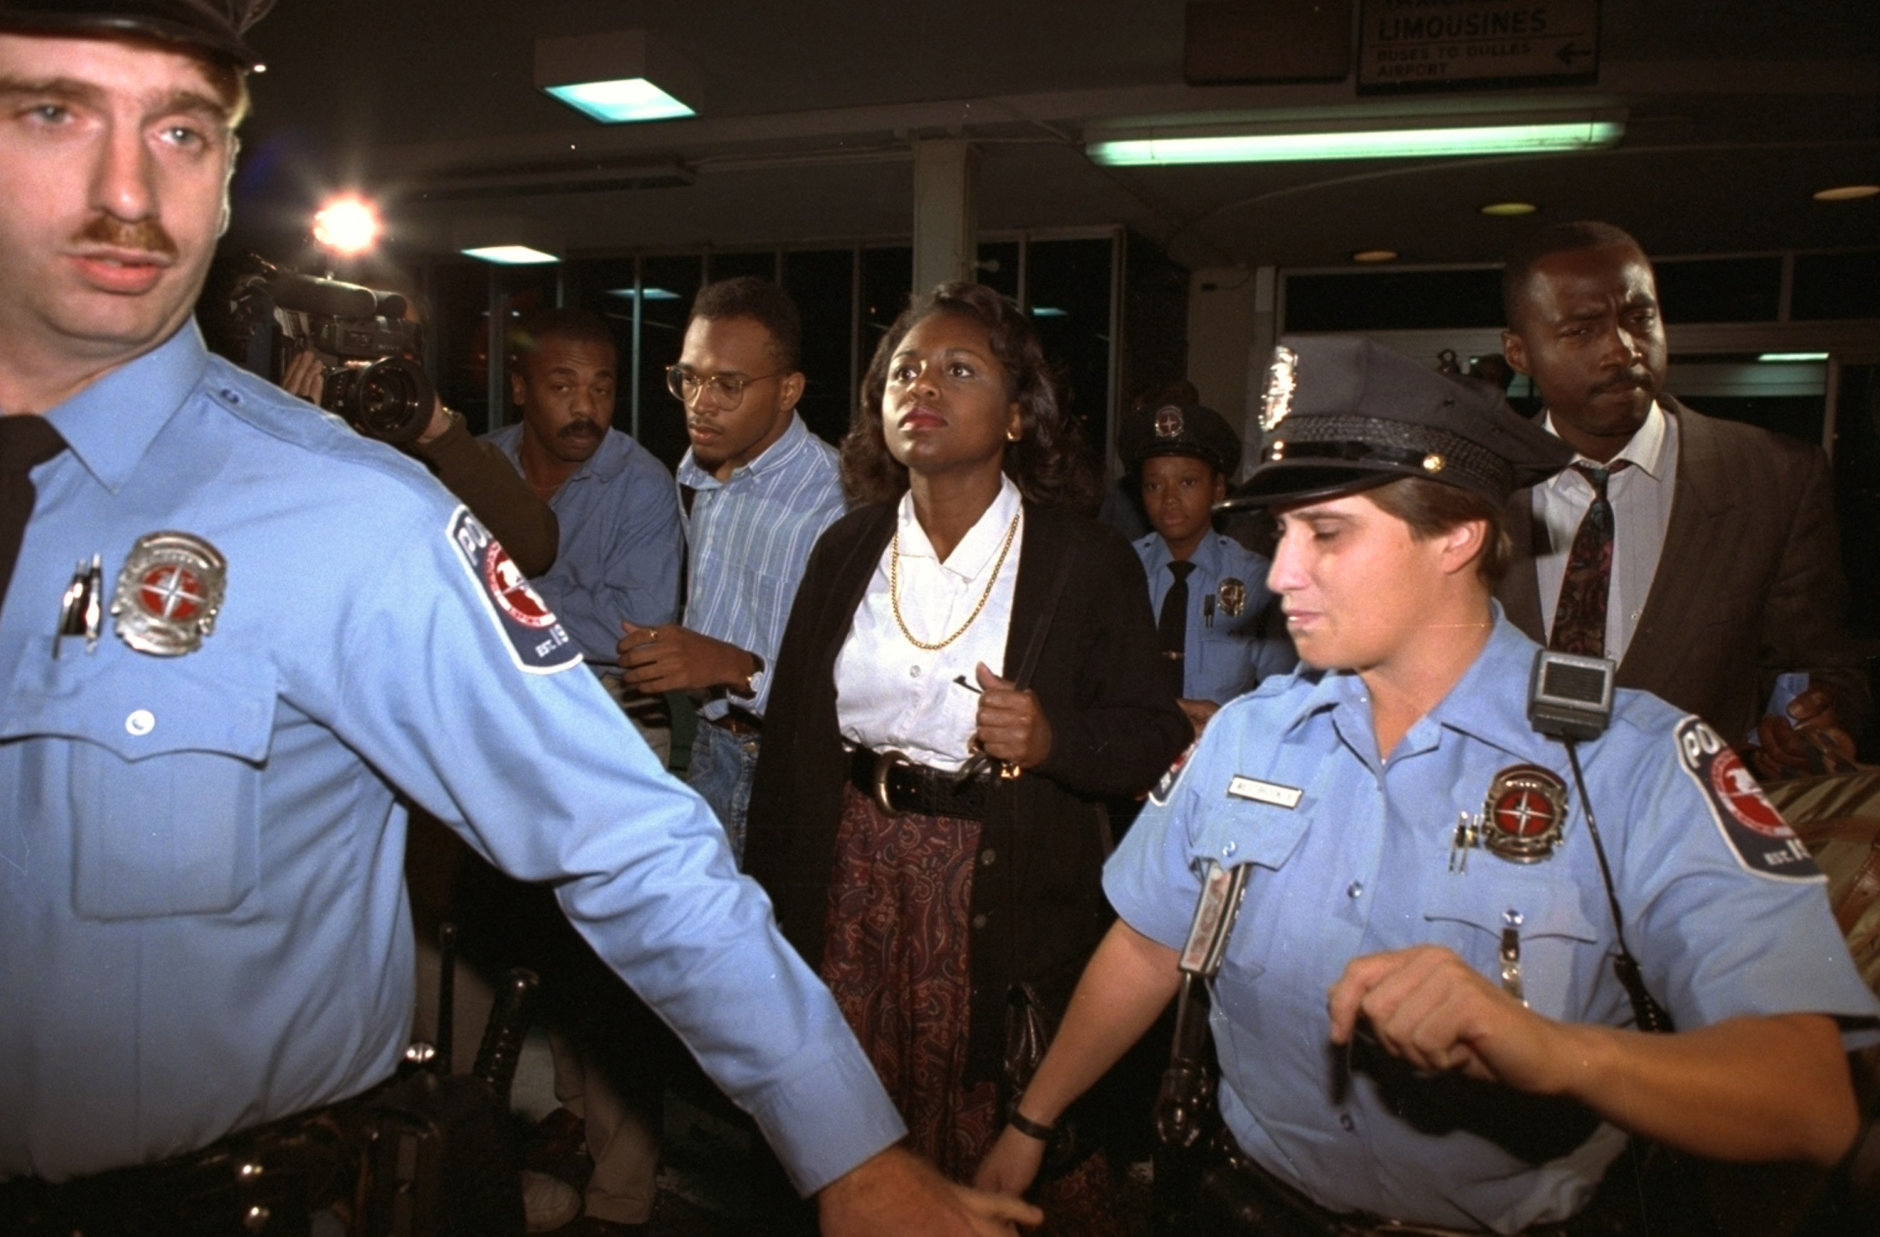 University of Oklahoma law professor Anita Hill, who accused U.S. Supreme Court nominee Judge Clarence Thomas of sexual harassment, leaves Washington's National Airport in Arlington, Va., amid heavy security, Friday, October 10, 1991.  Hill was to testify before the Senate Judiciary Committee Friday.  (AP Photo/Doug Mills)